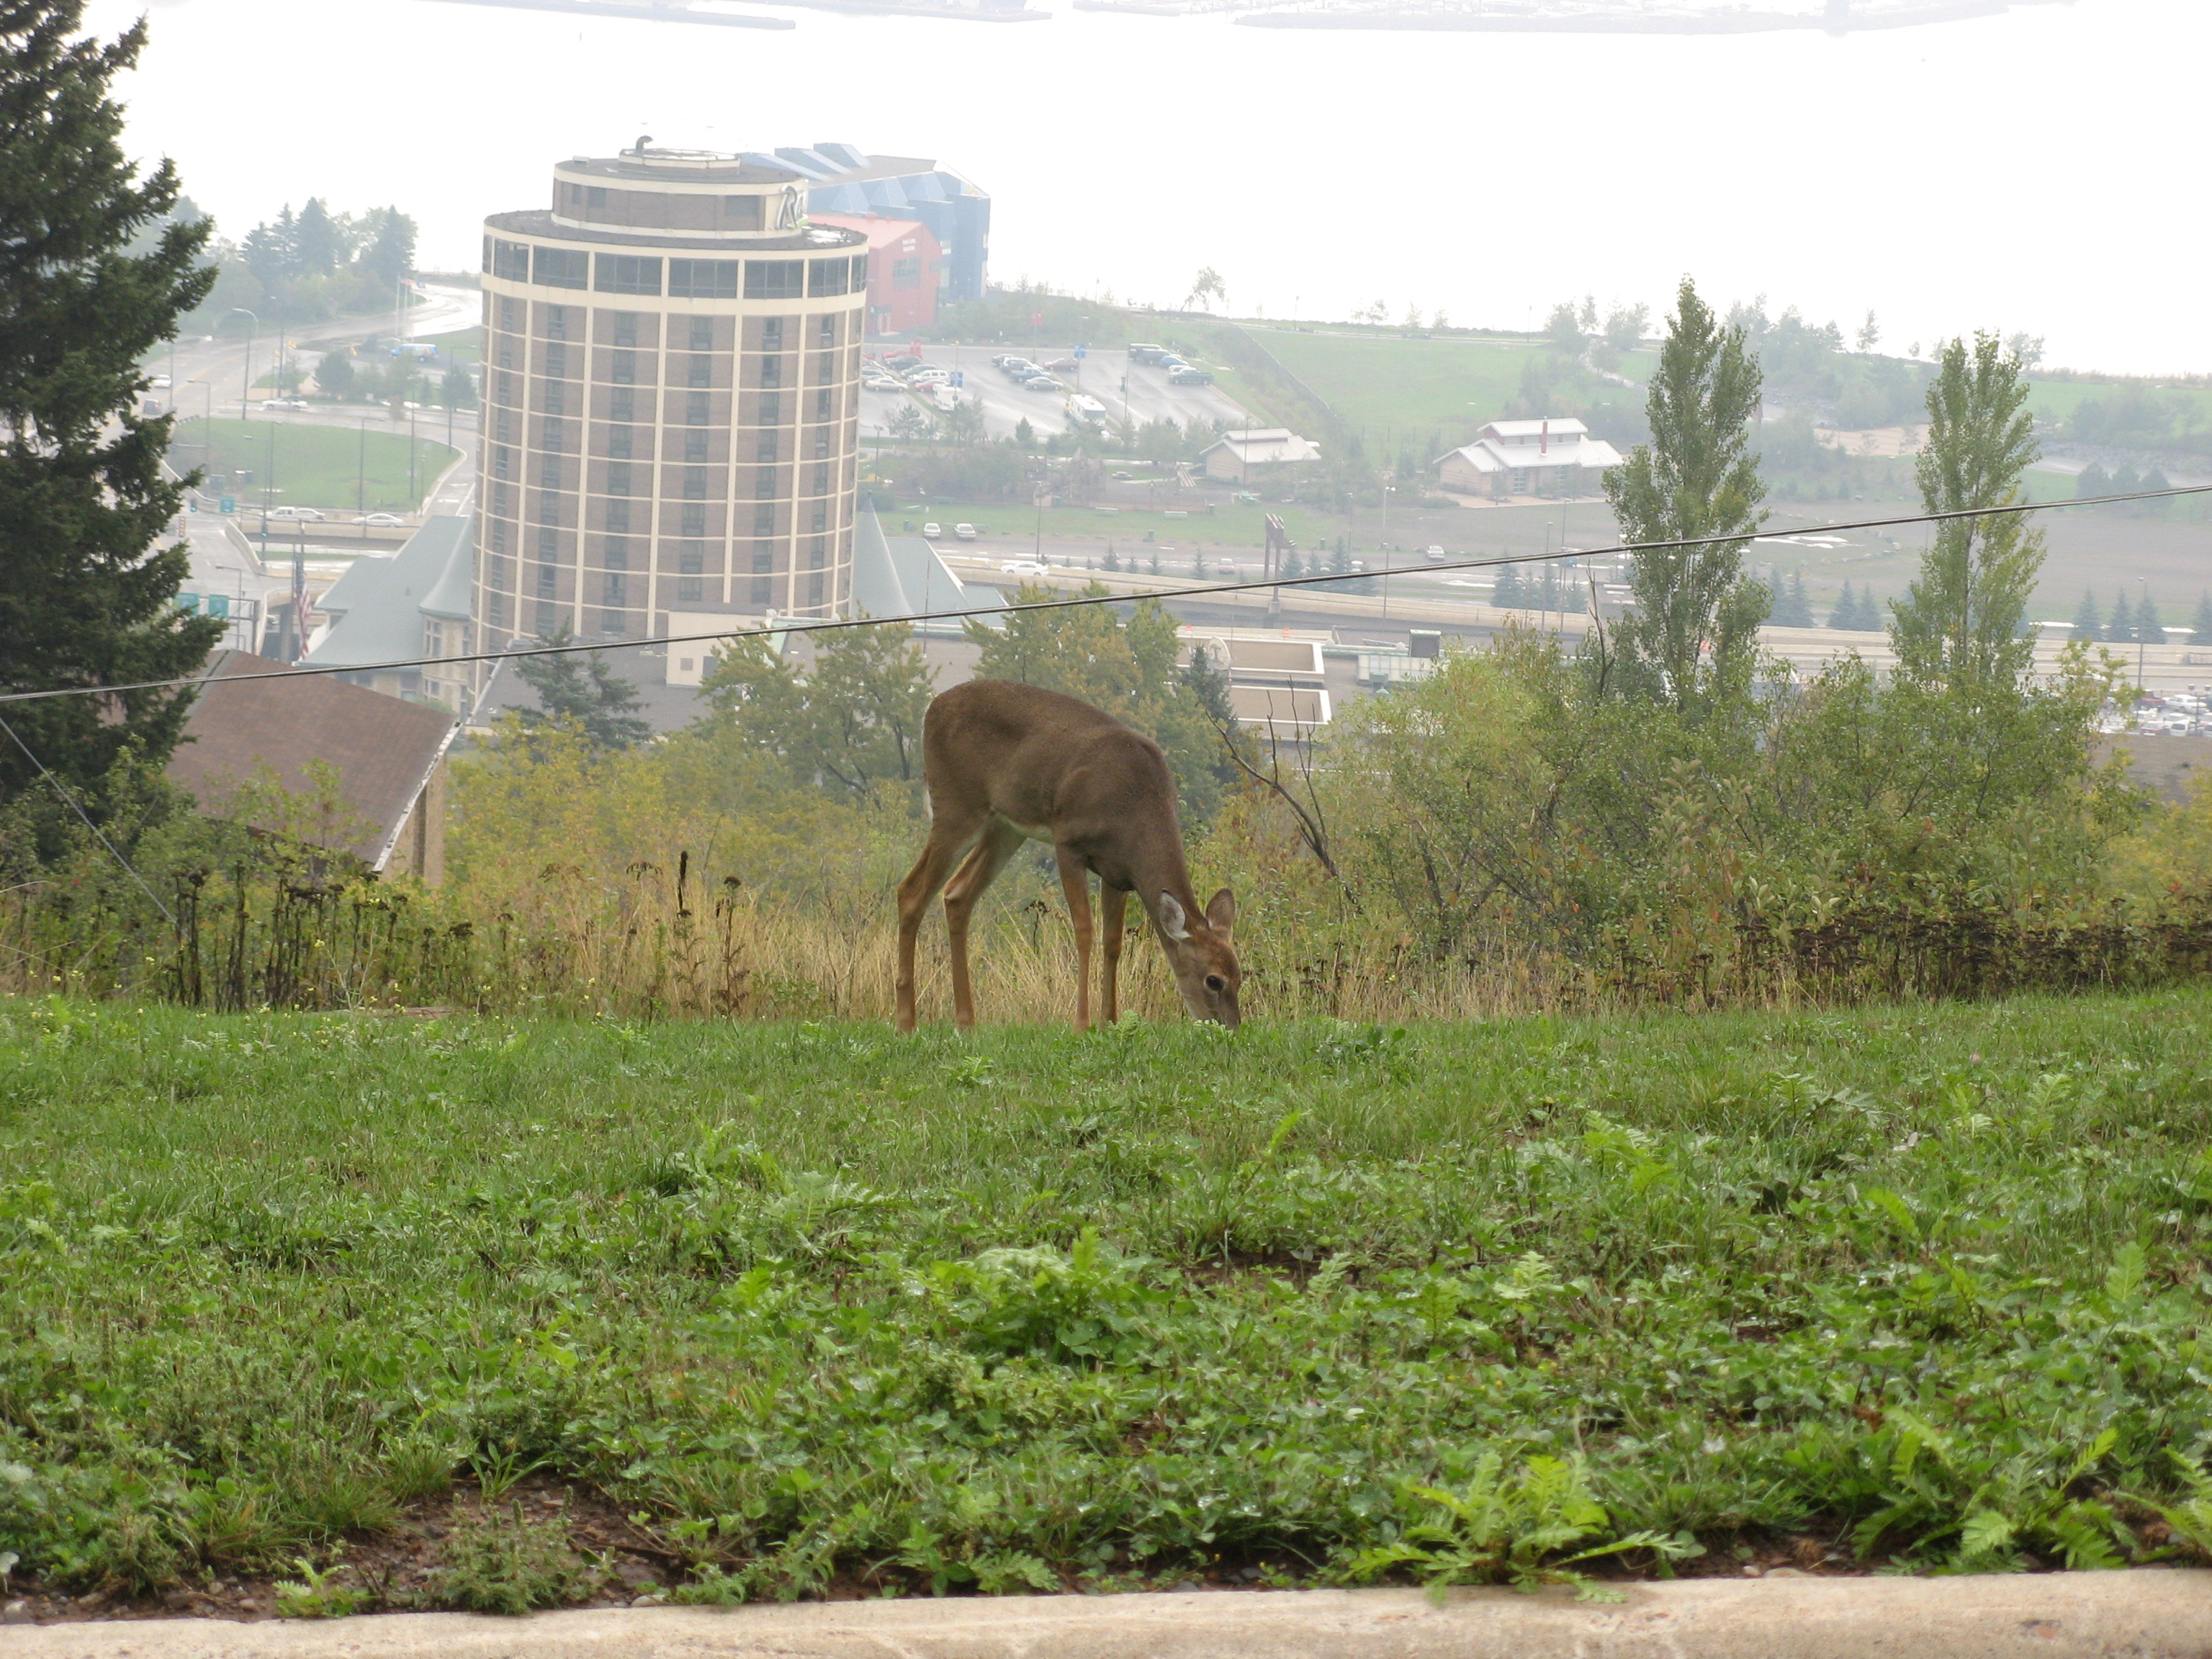 Deer browsing on hilltop above working harbor in Duluth, MN - Photo by Andrew O'Brian (CC BY-NC 2.0)